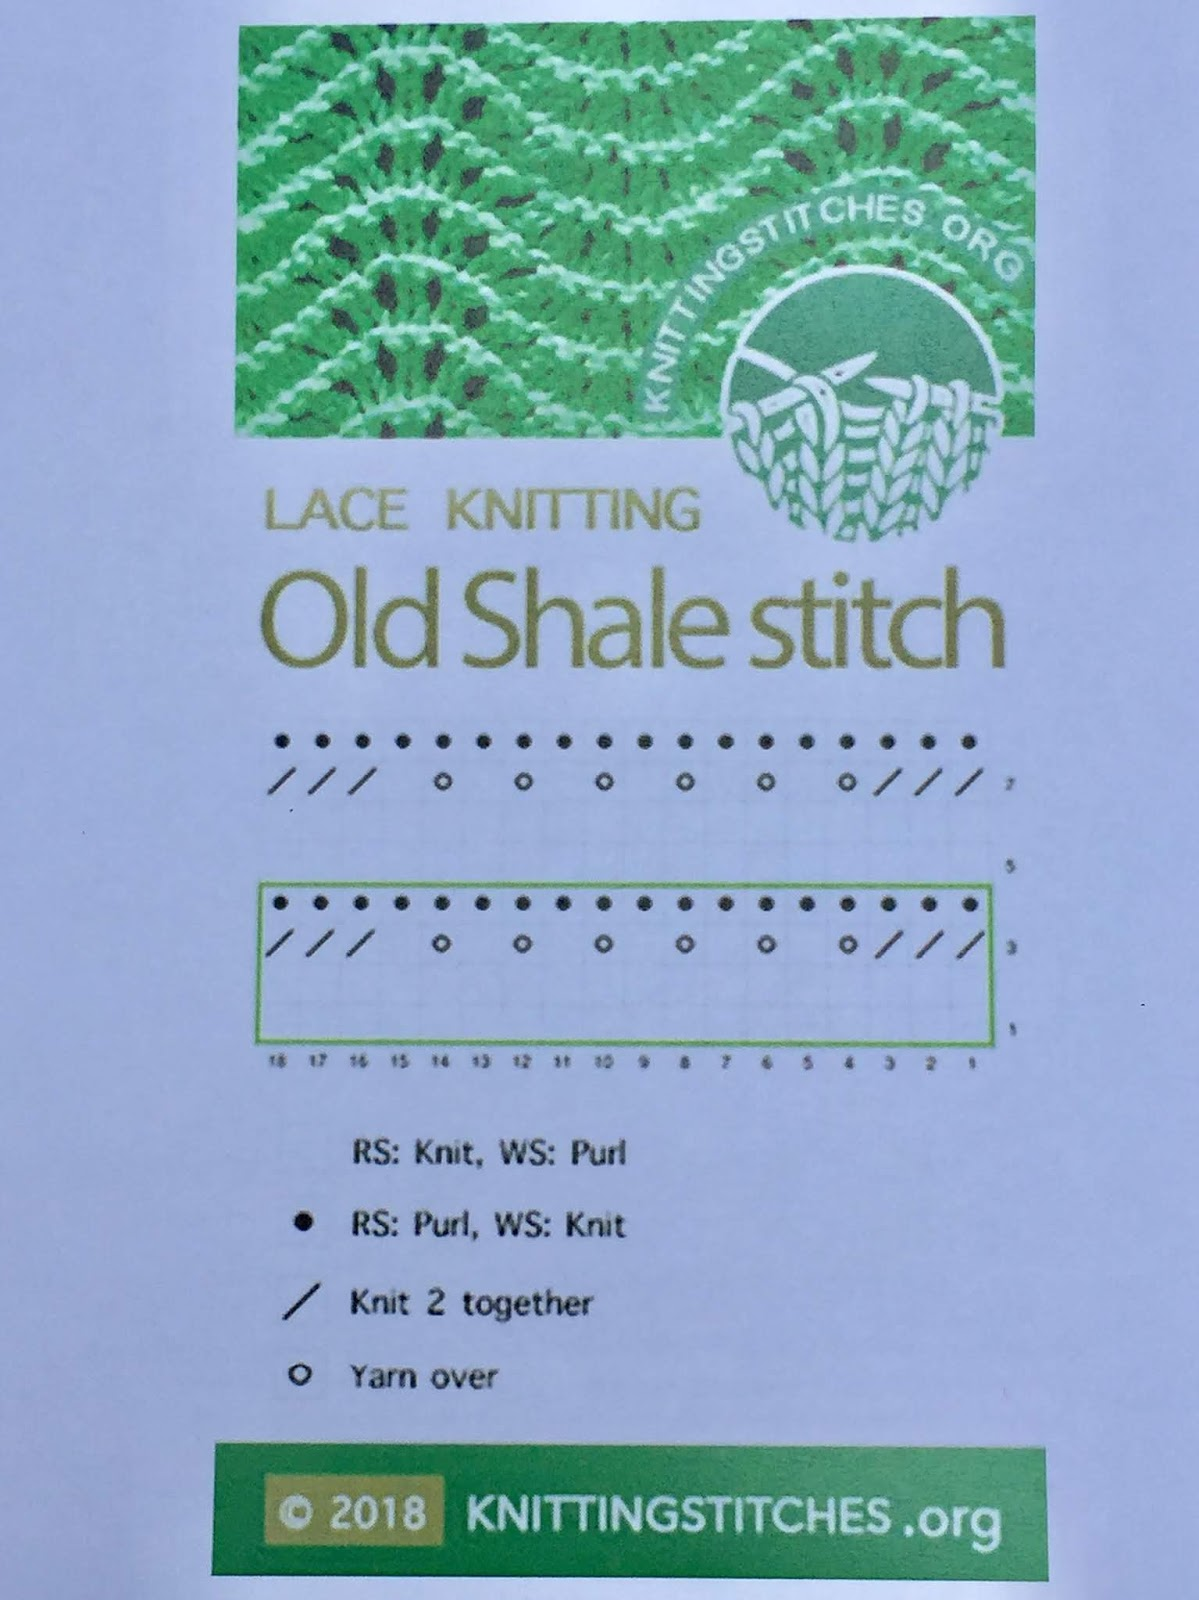 Knitting Stitches 2018 - Old Shale stitch pattern